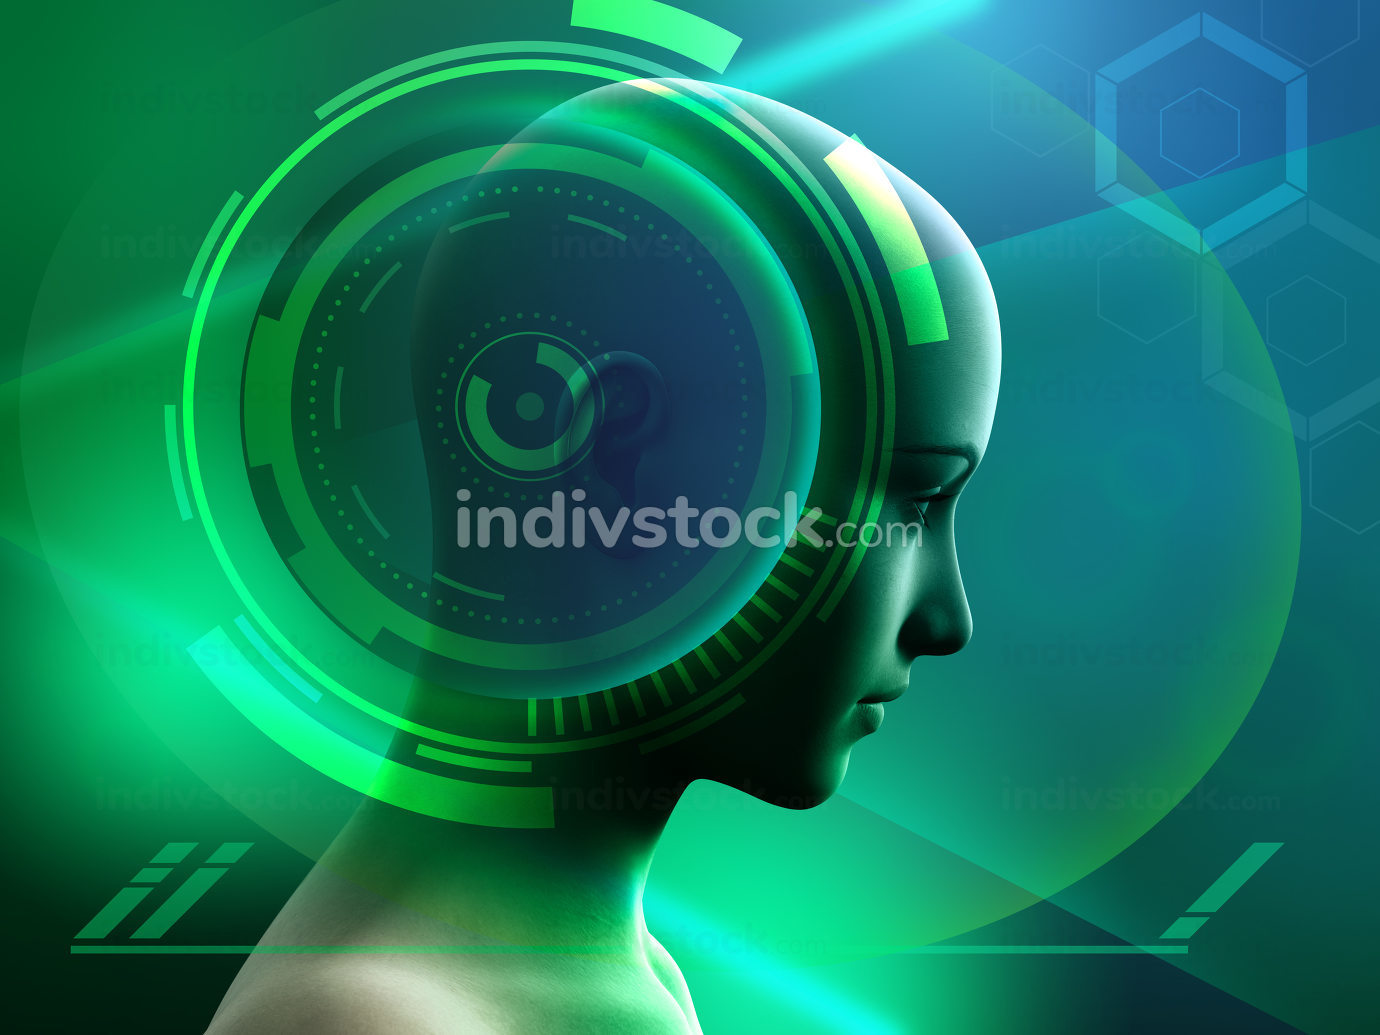 Human head in a futuristic environment.Human head with some high technology interface elements. Digital illustration.